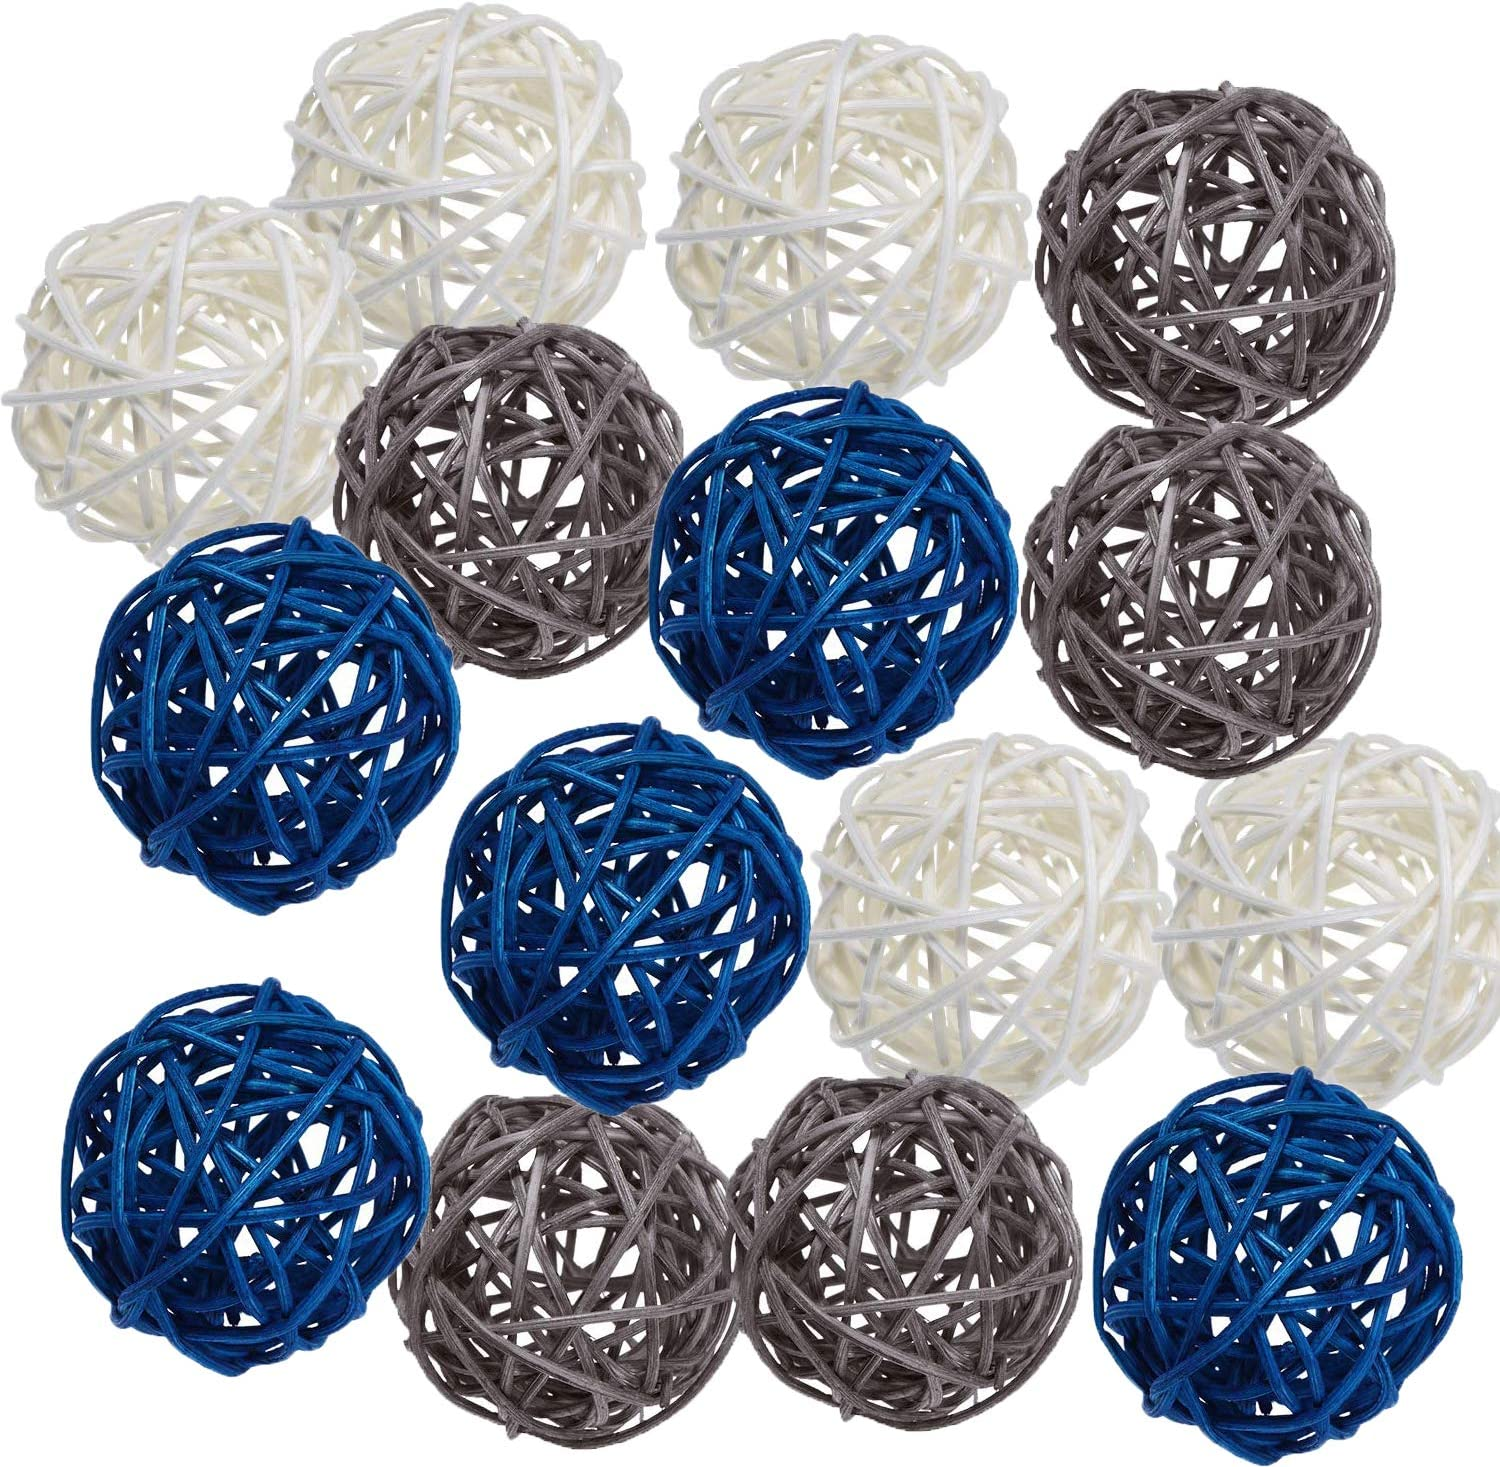 Pemalin 15pcs Big Wicker Rattan Balls -Mixed 3 Colors Decorative Balls for Bowls, Vase Filler, Coffee Table Decor, Wedding Party Centerpieces Confetti